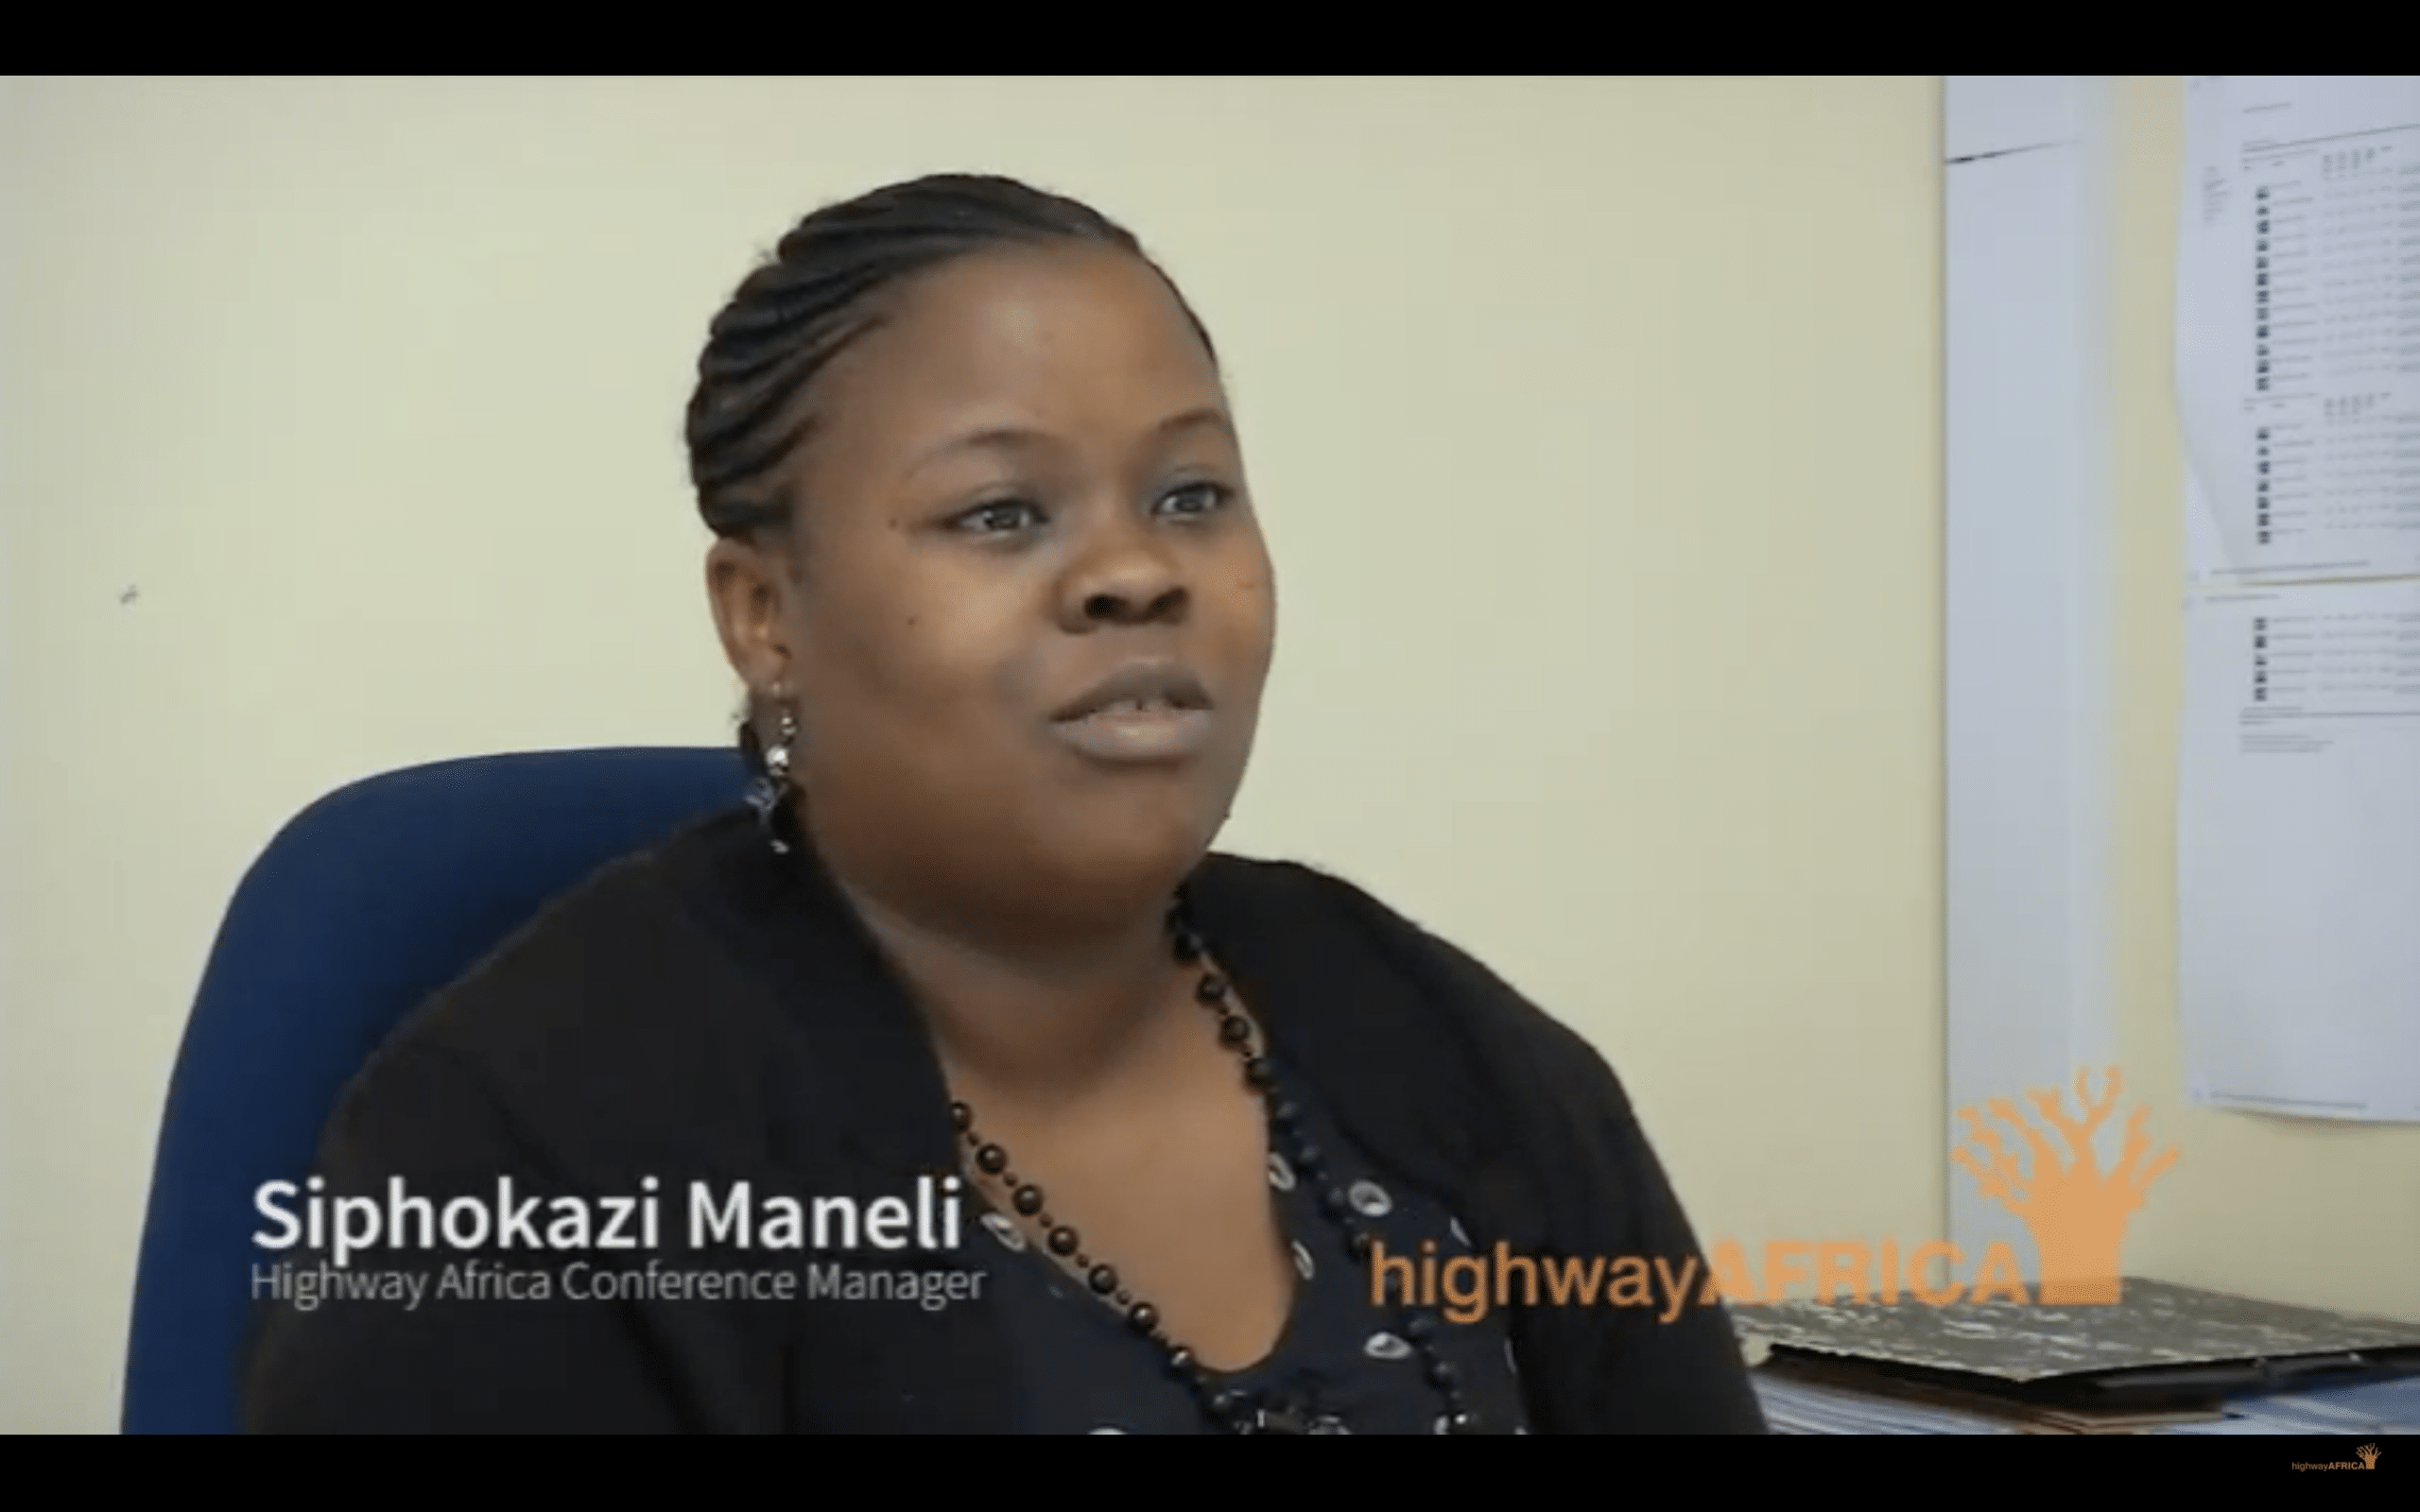 Interview with Siphokazi Maneli, Highway Africa Conference Manager